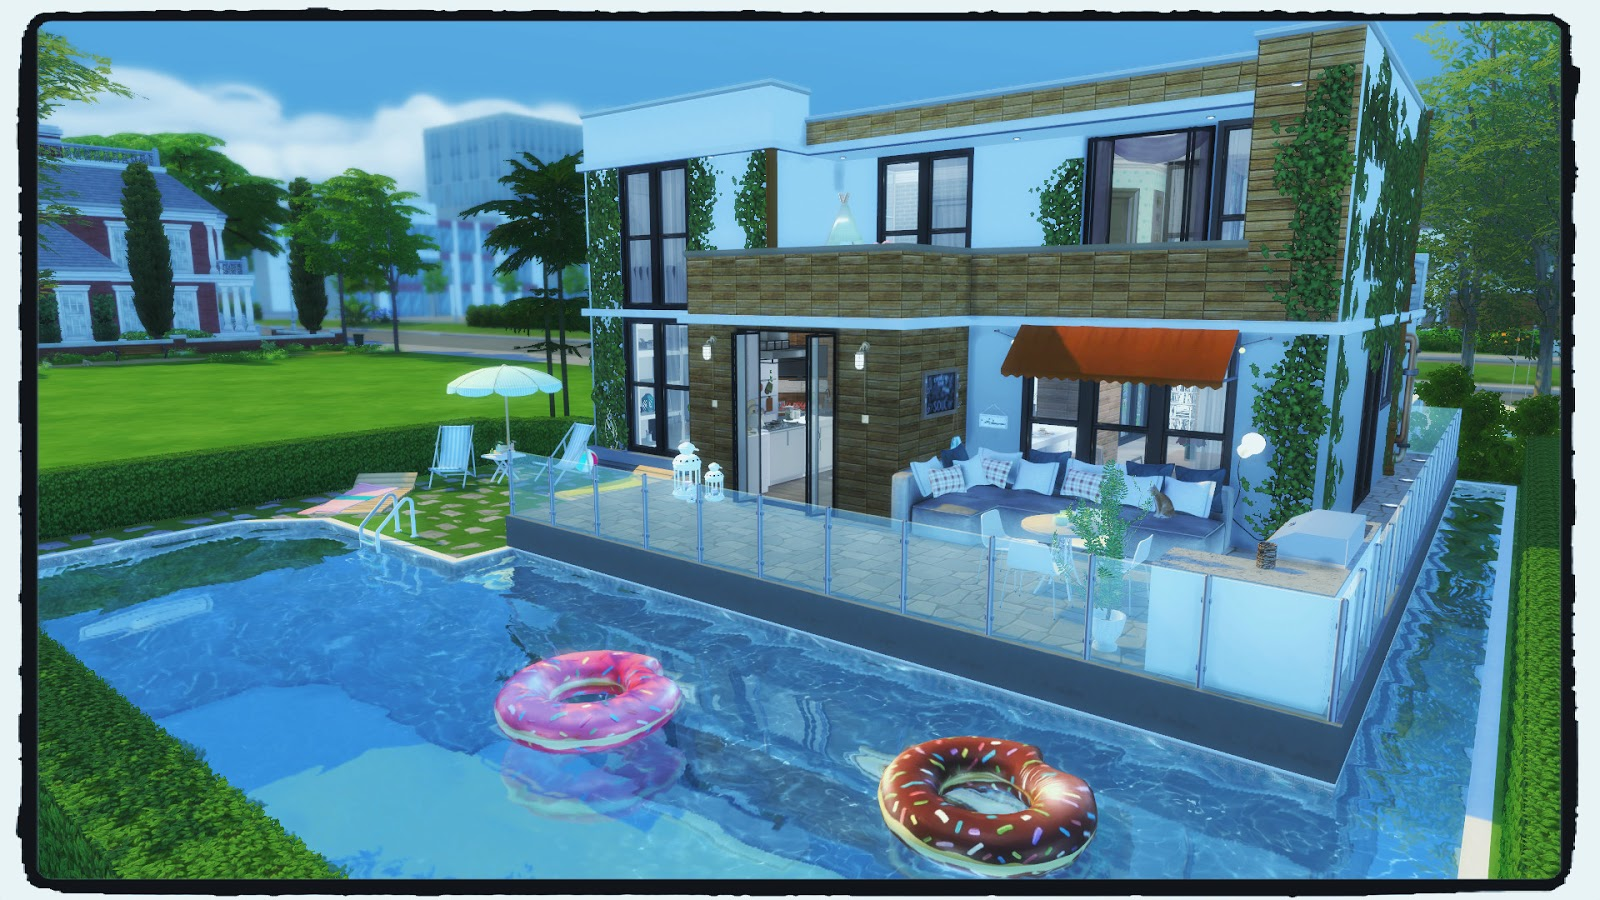 Sims 4 - Building on Newcrest Modern House with Pool (Build ...